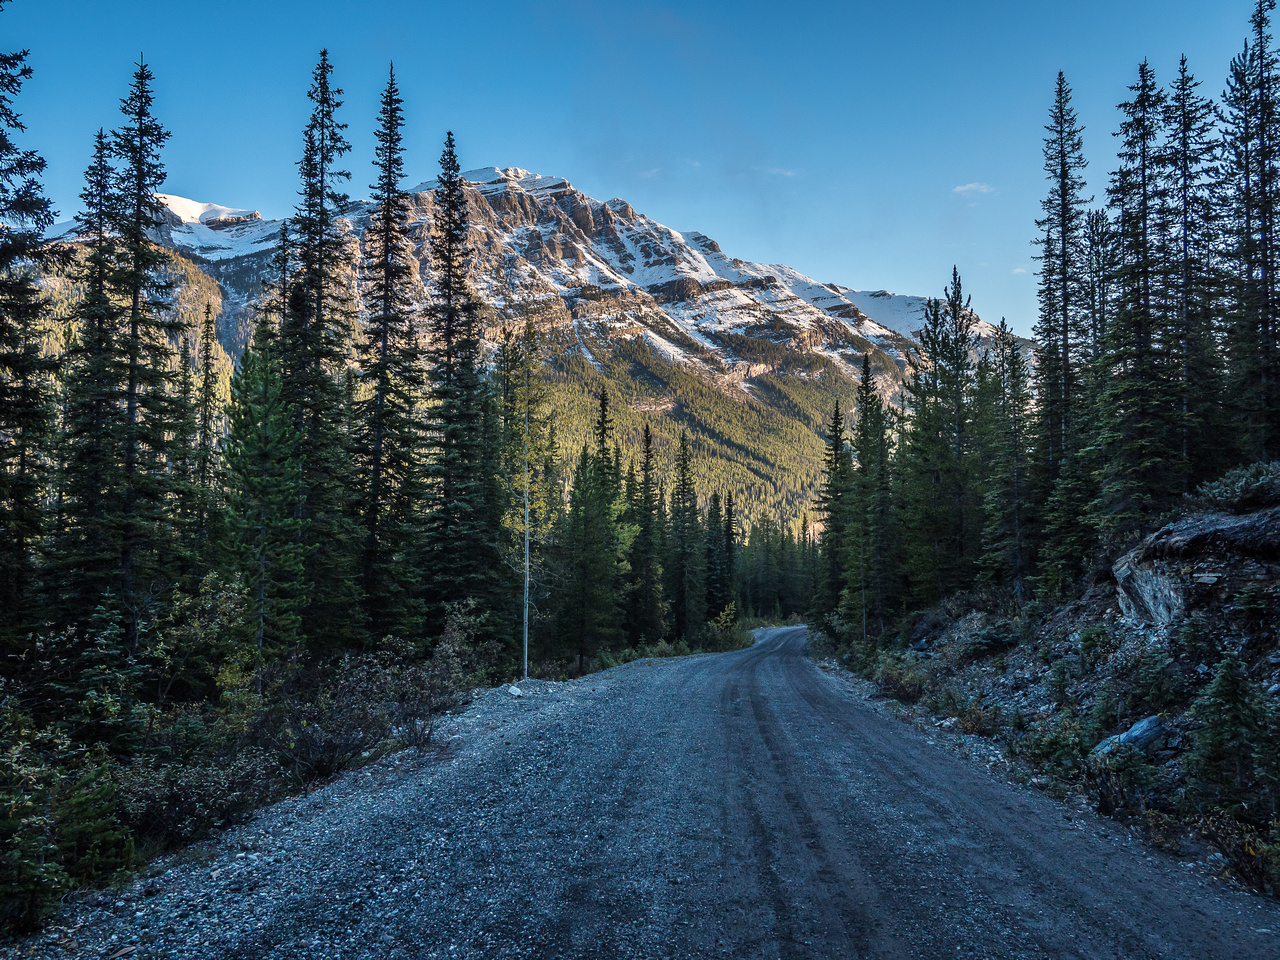 Looking back down the Lake O'Hara approach road at Mount Bosworth with a fresh coat of white. But it's already MUCH sunnier than the forecast promised so that's good.